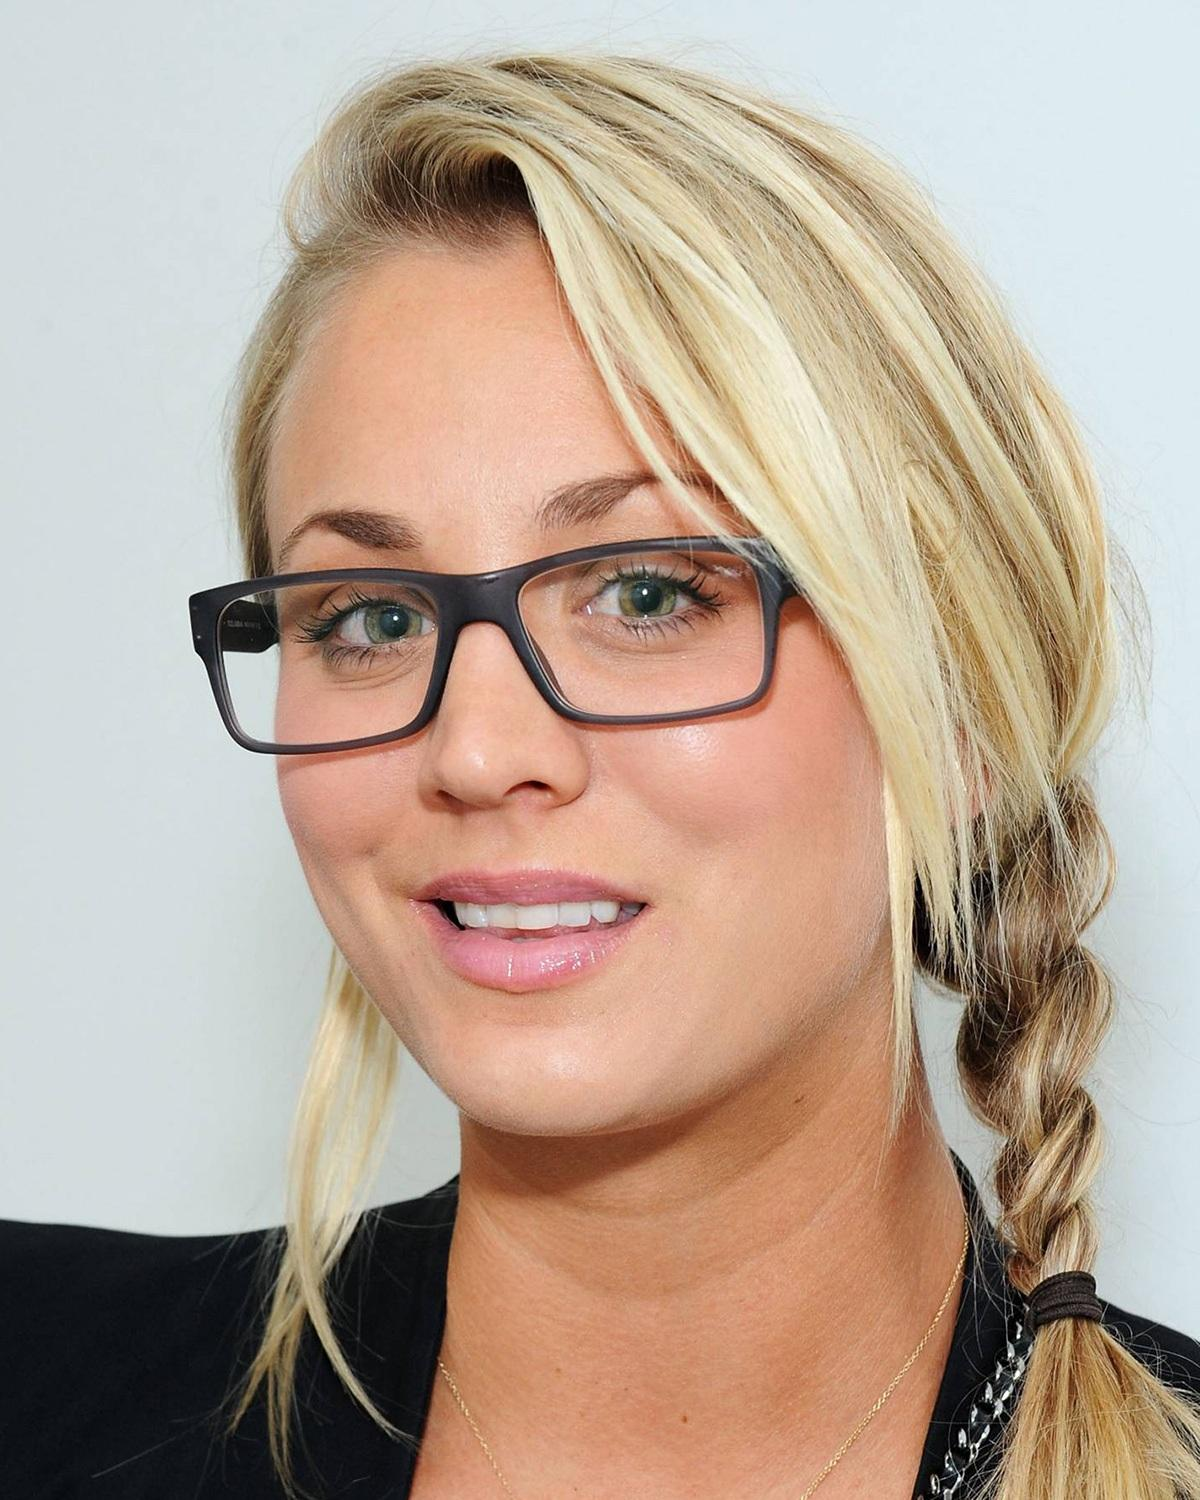 Kaley Cuoco ruined everything with that stupid pixie haircut.